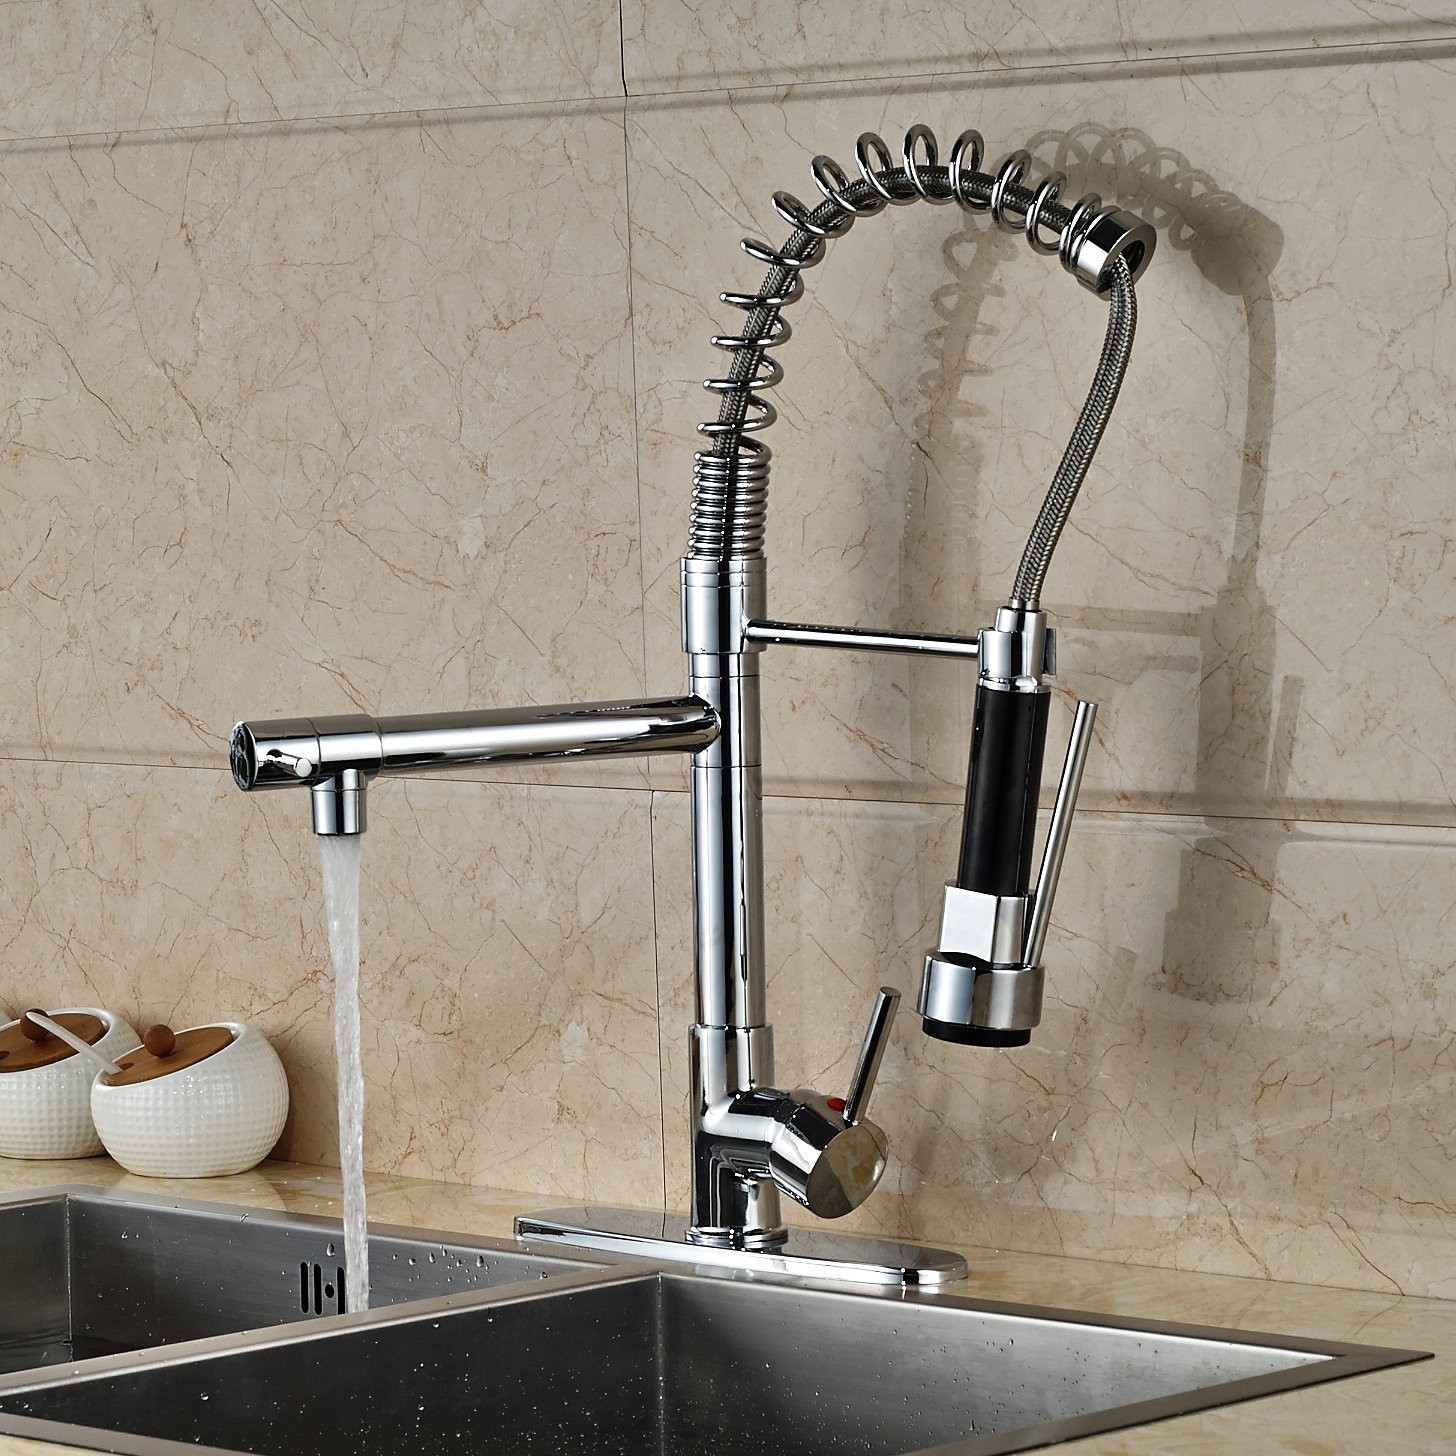 Add Sprayer Kitchen Faucet